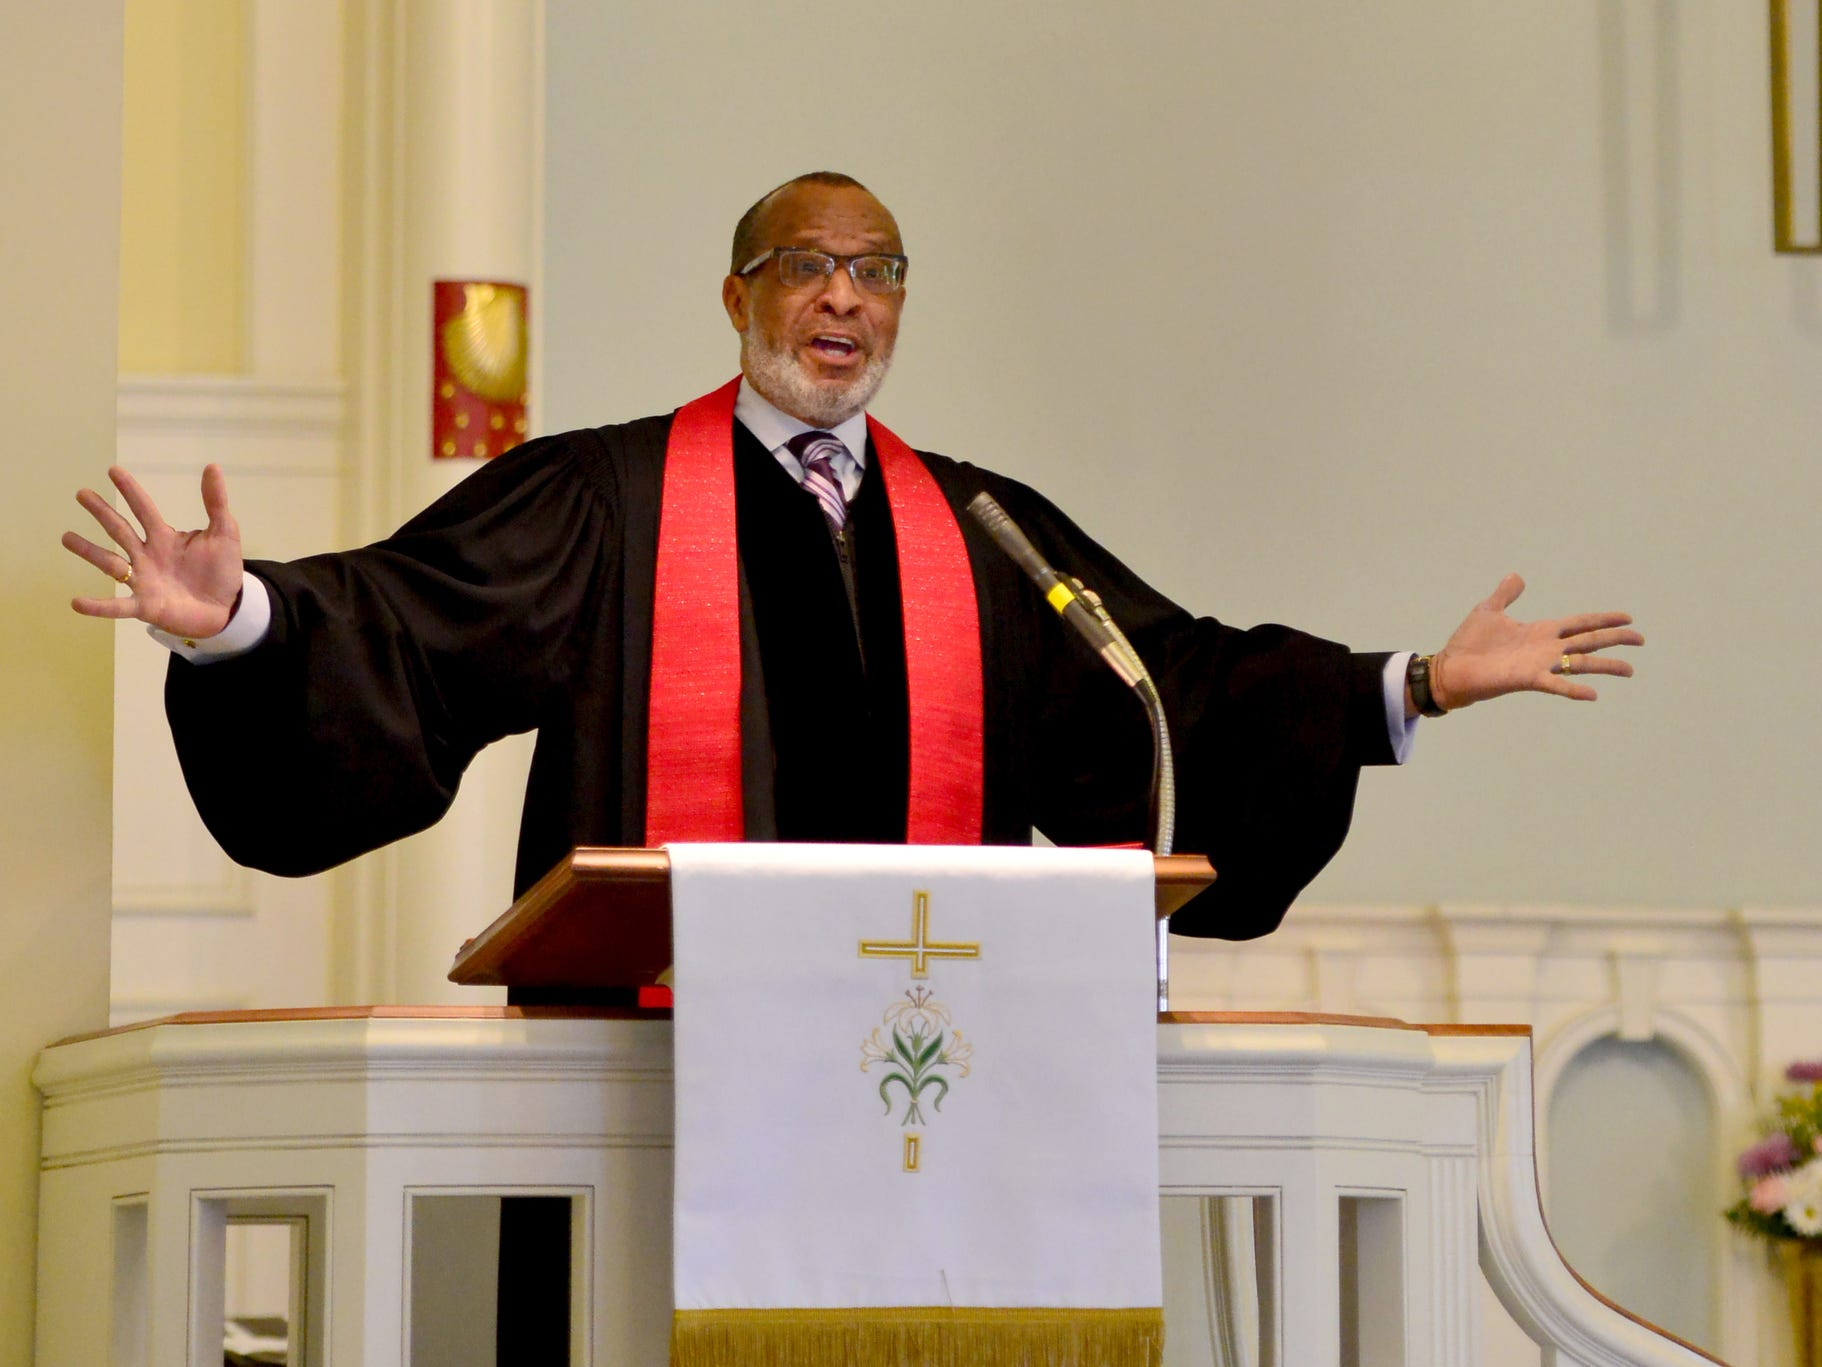 Rev. Gregory Jerome Jackson, of Mount Olive Baptist Church, Hackensack, N.J., lead the sermon at the Ridgewood United Methodist Church, which held its 37th year of honoring Dr. Martin Luther King, Jr. in Ridgewood, N.J. on Monday January 21, 2019. Area residents and religious leaders from many faiths attended the annual event.